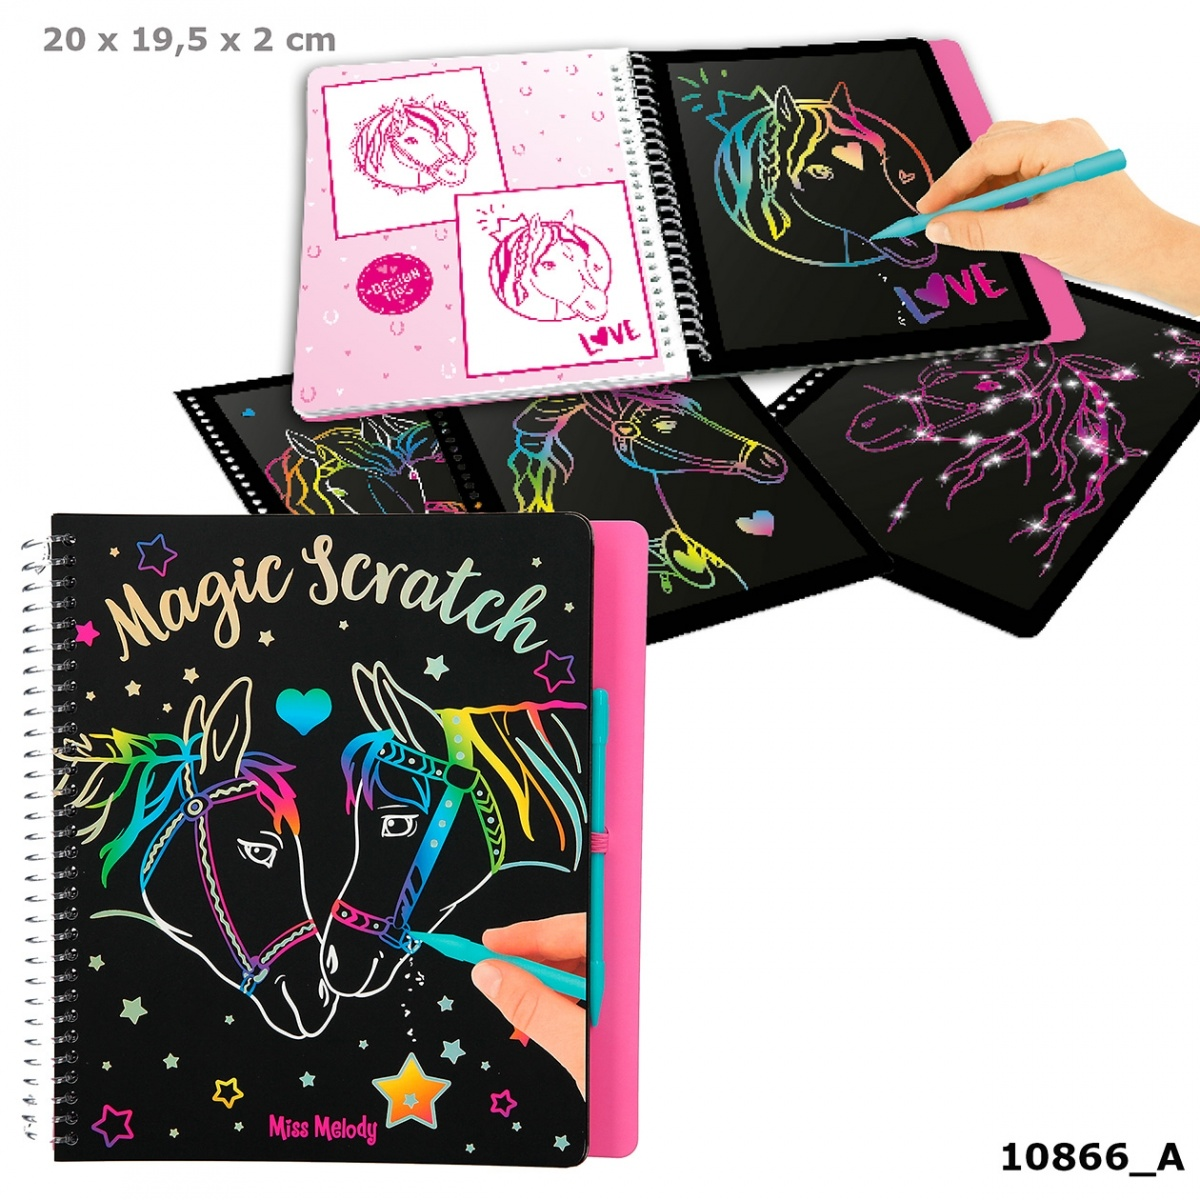 Miss Melody Miss Melody magic scratch boek